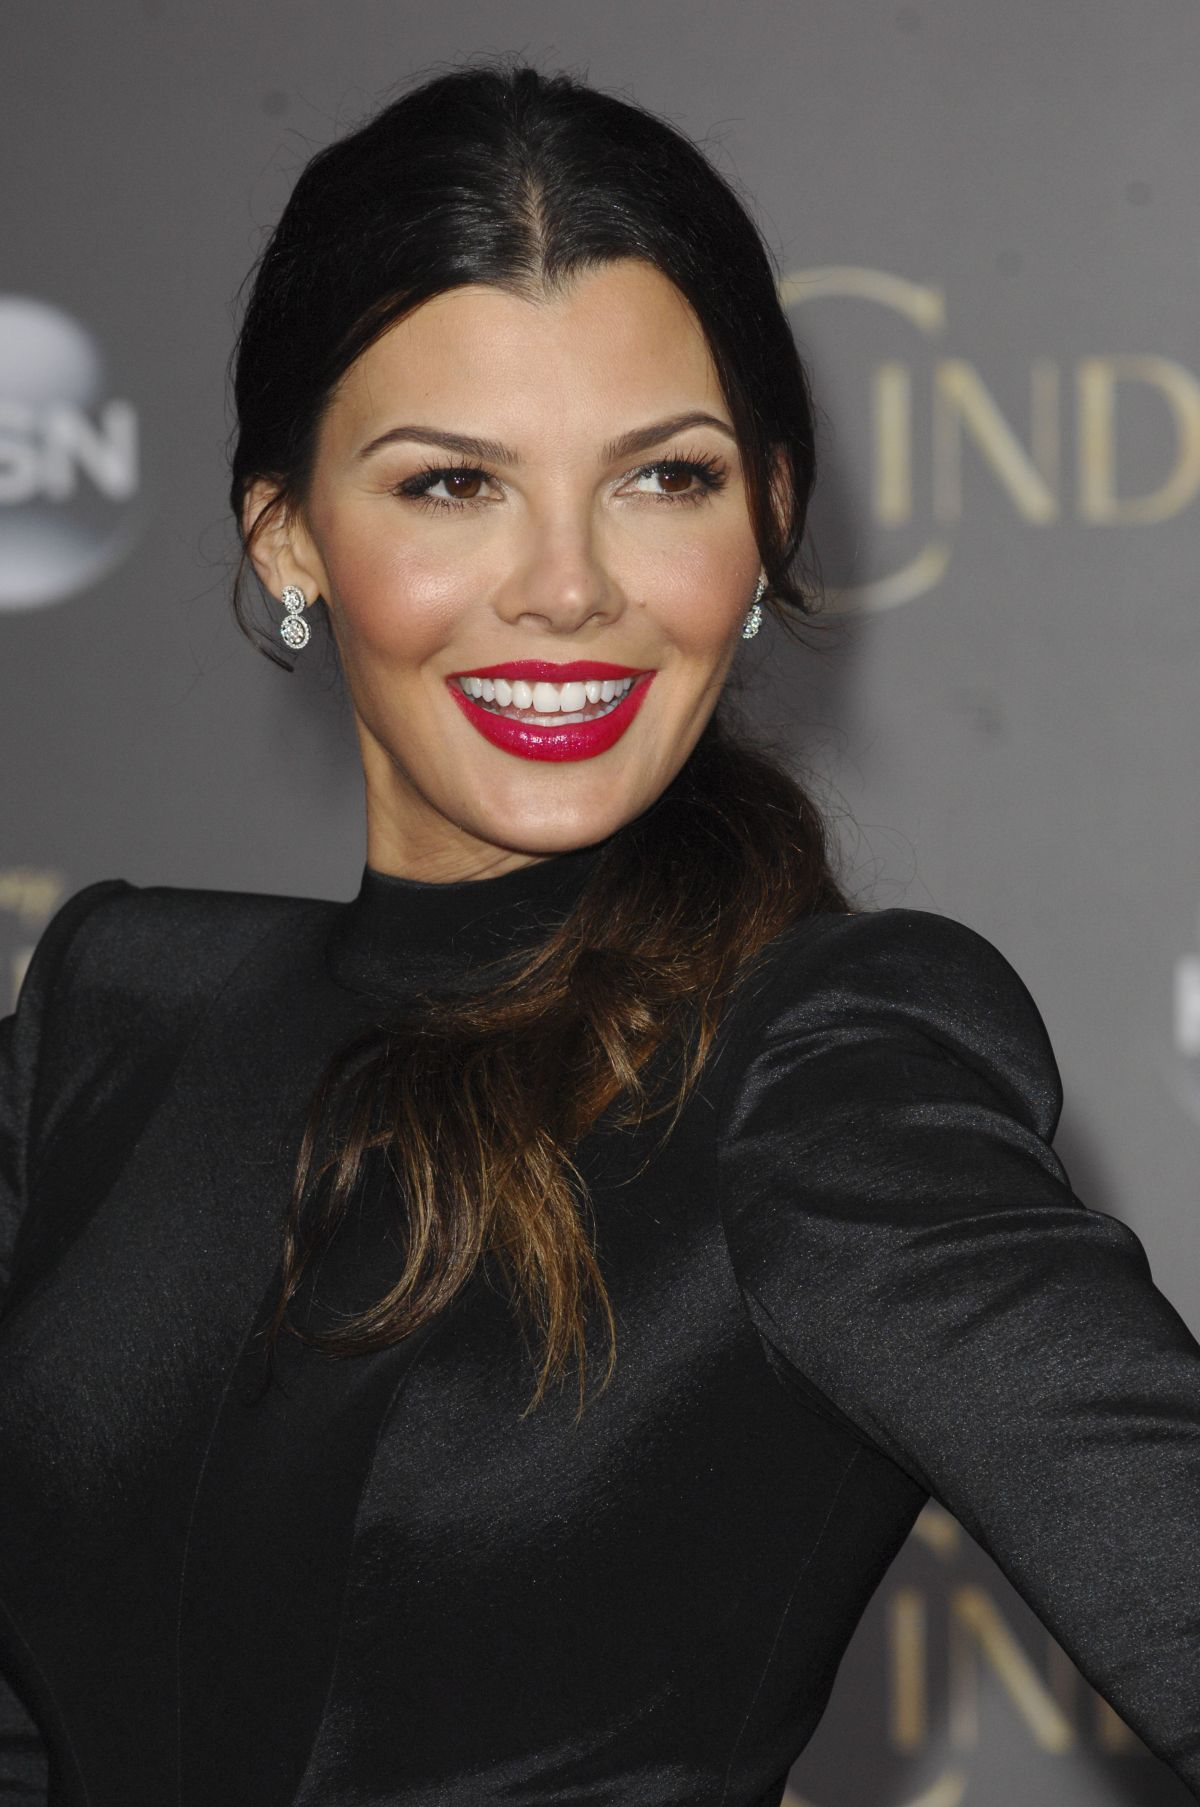 ali landry photo galleryali landry getty images, ali landry wikipedia, ali landry instagram, ali landry, ali landry doritos, ali landry wiki, ali landry images, ali landry 2014, ali landry photo gallery, ali landry net worth, ali landry family, ali landry husband, ali landry mario lopez, ali landry doritos commercial, ali landry imdb